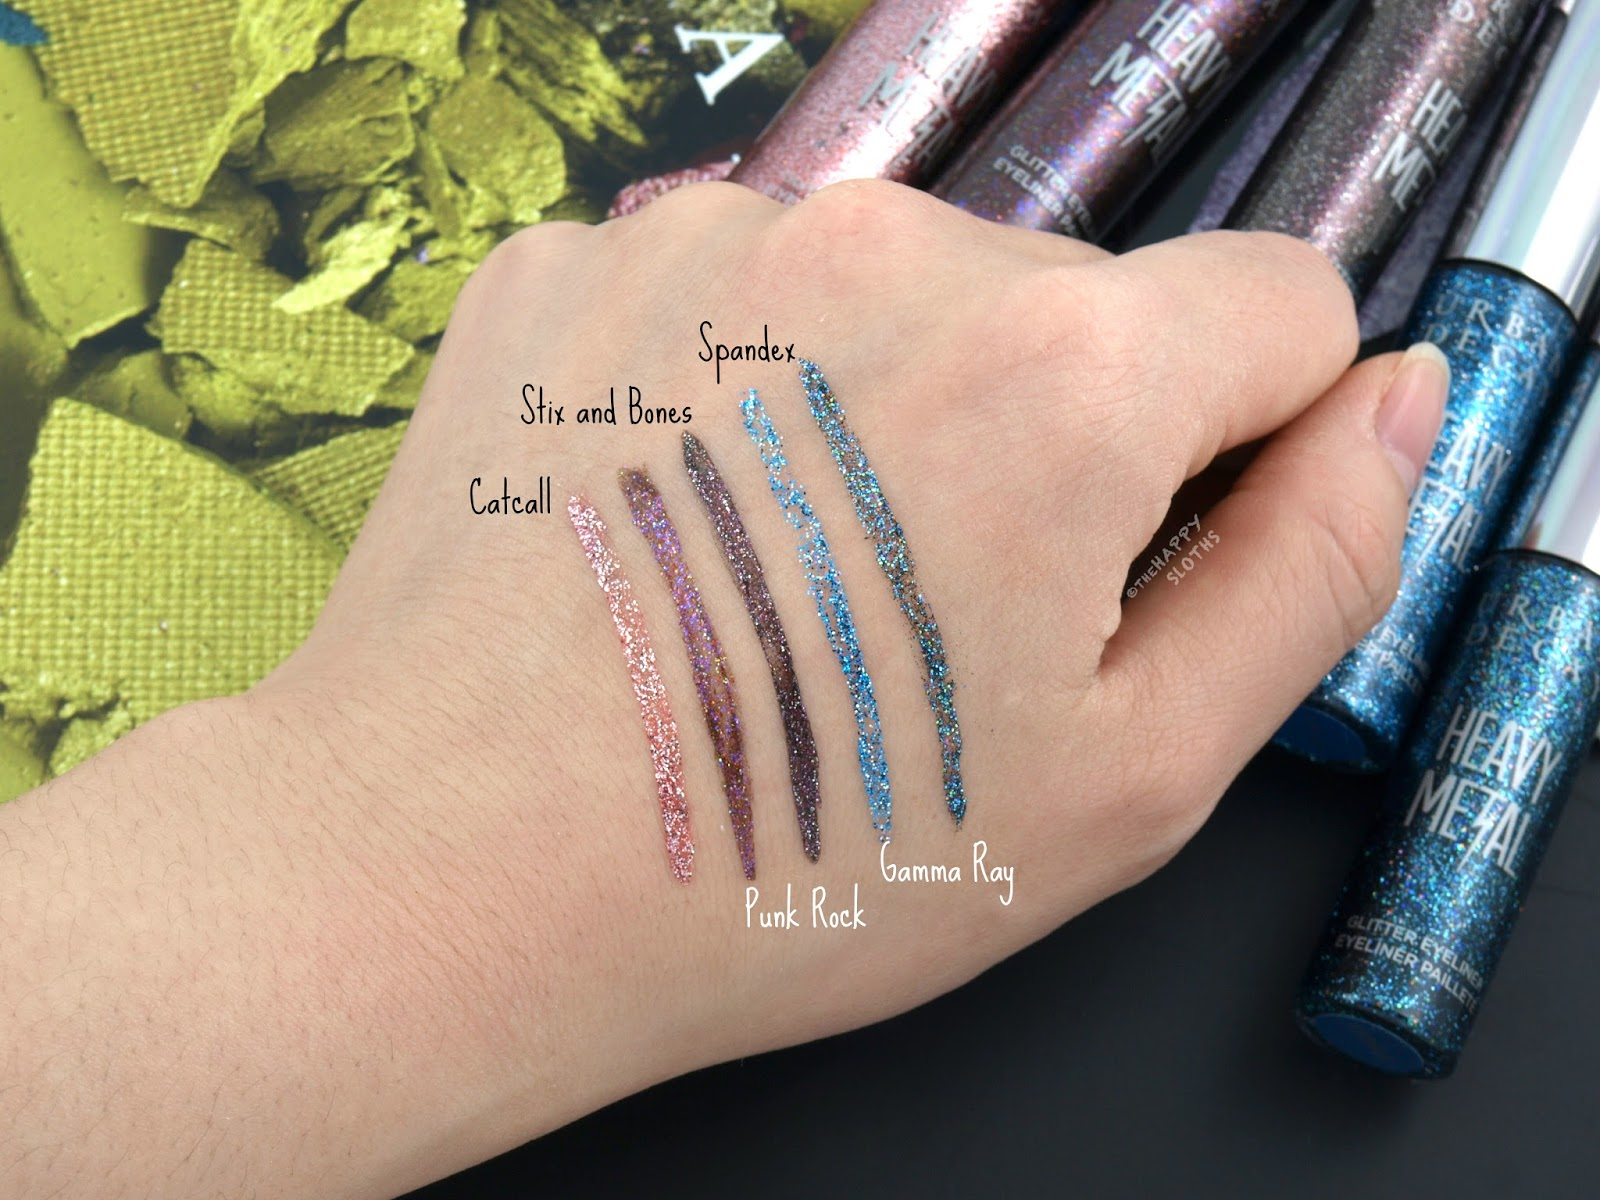 Urban Decay Heavy Metal Glitter Eyeliner: Review and Swatches